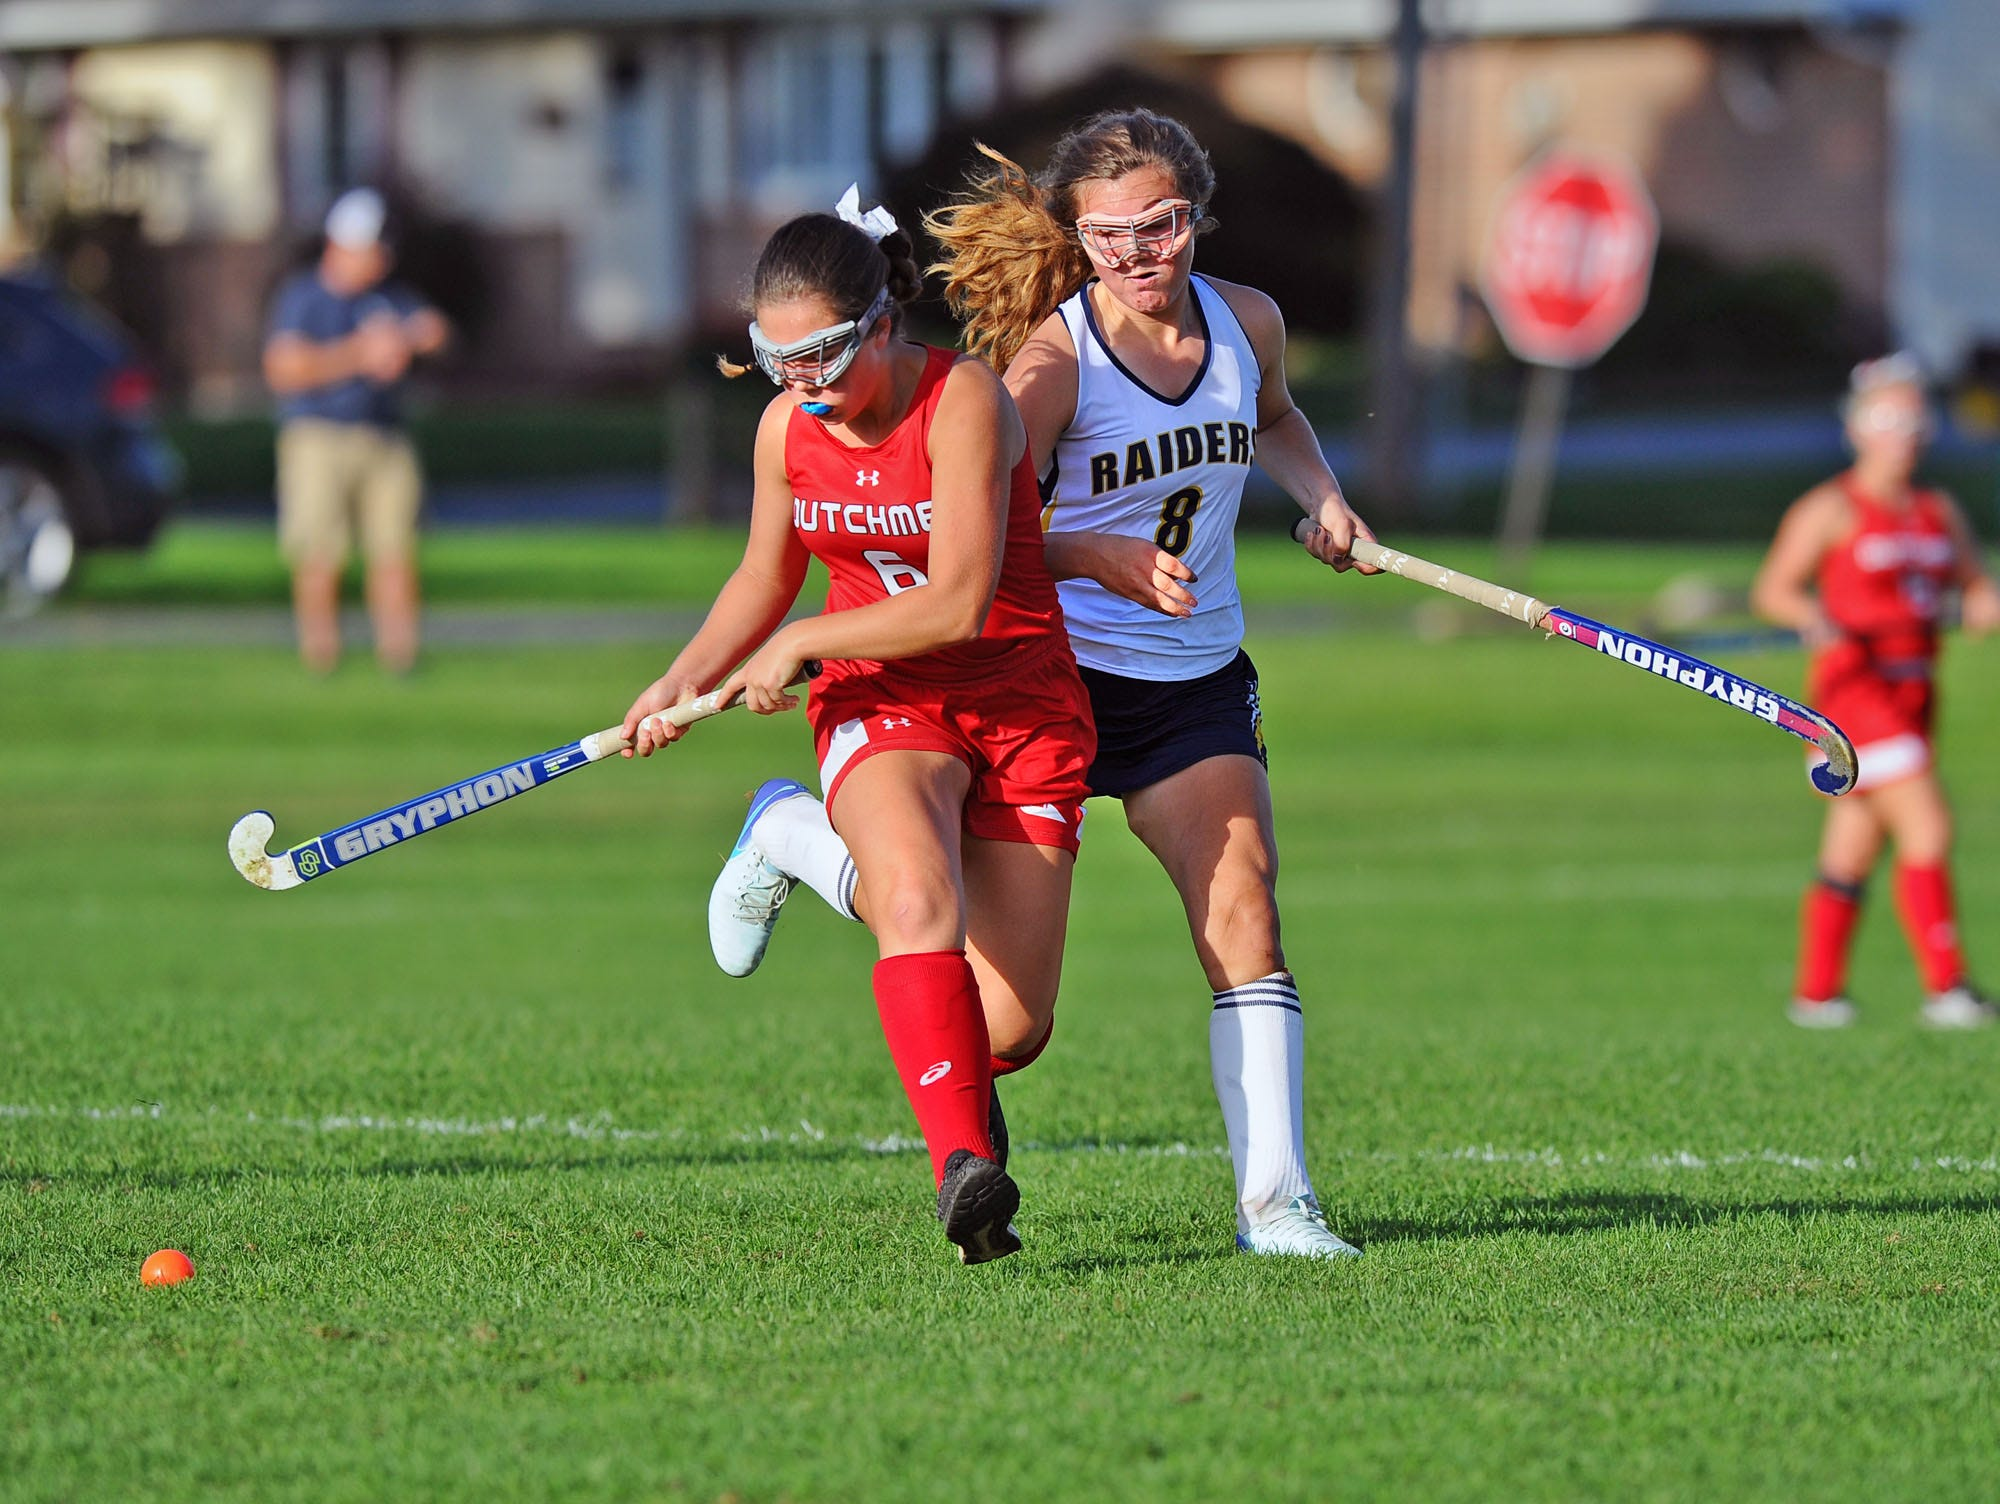 Elco field hockey completes sweep of A C, on brink of